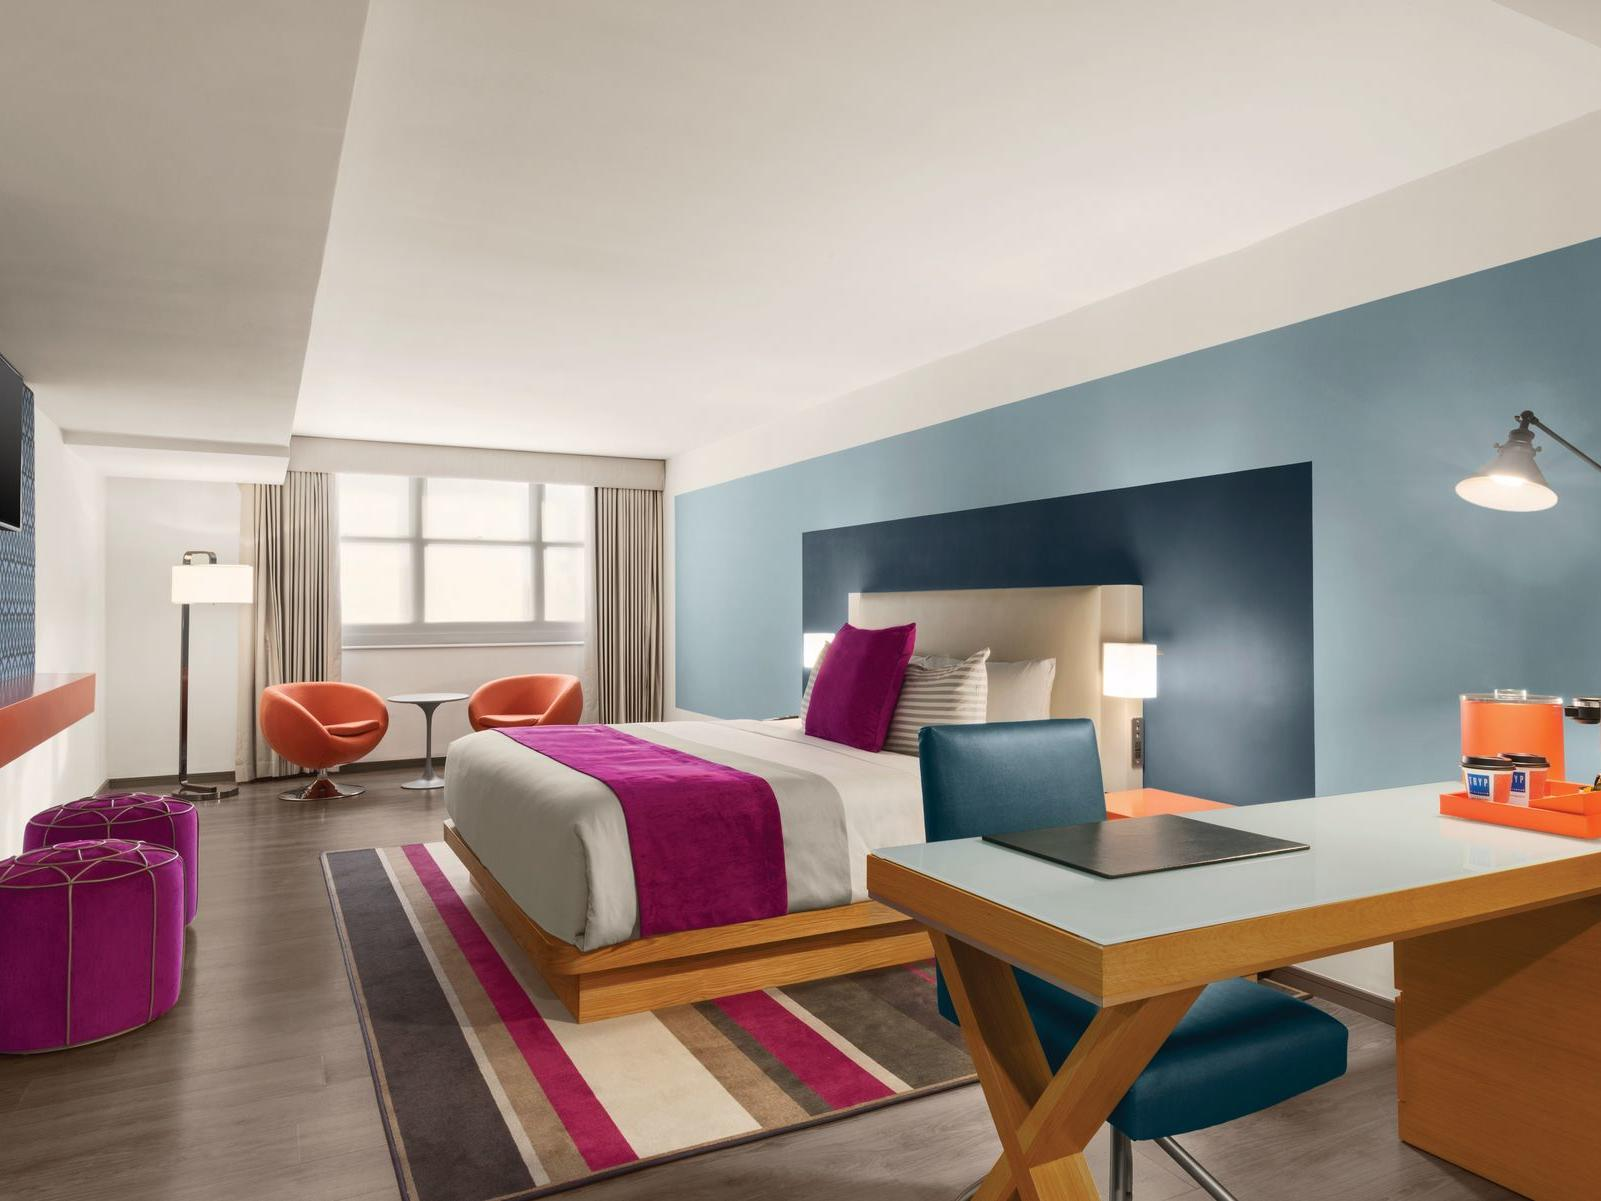 TRYP by Wyndham Isla Verde TRYP by Wyndham Isla Verde hotel room with bed, desk and accent chairs with table